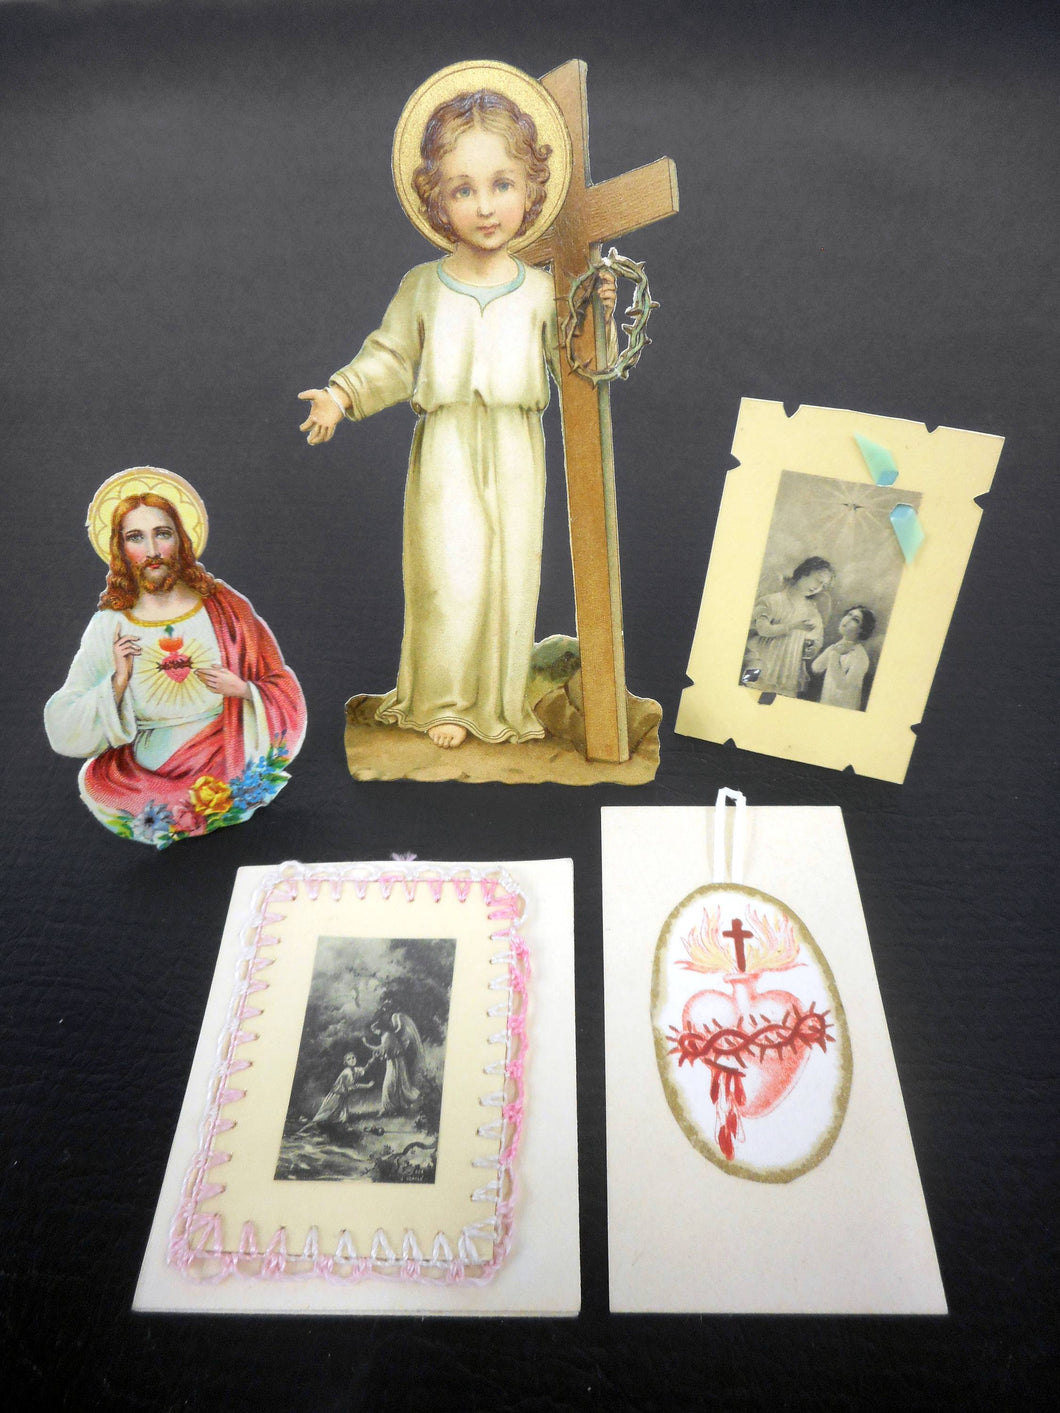 Lot of 5 Antique 1920's French Standalone Holly Cards Crafts, Handmade, Sacred Heart, Jesus Child Holding Cross and Crown of Thorns